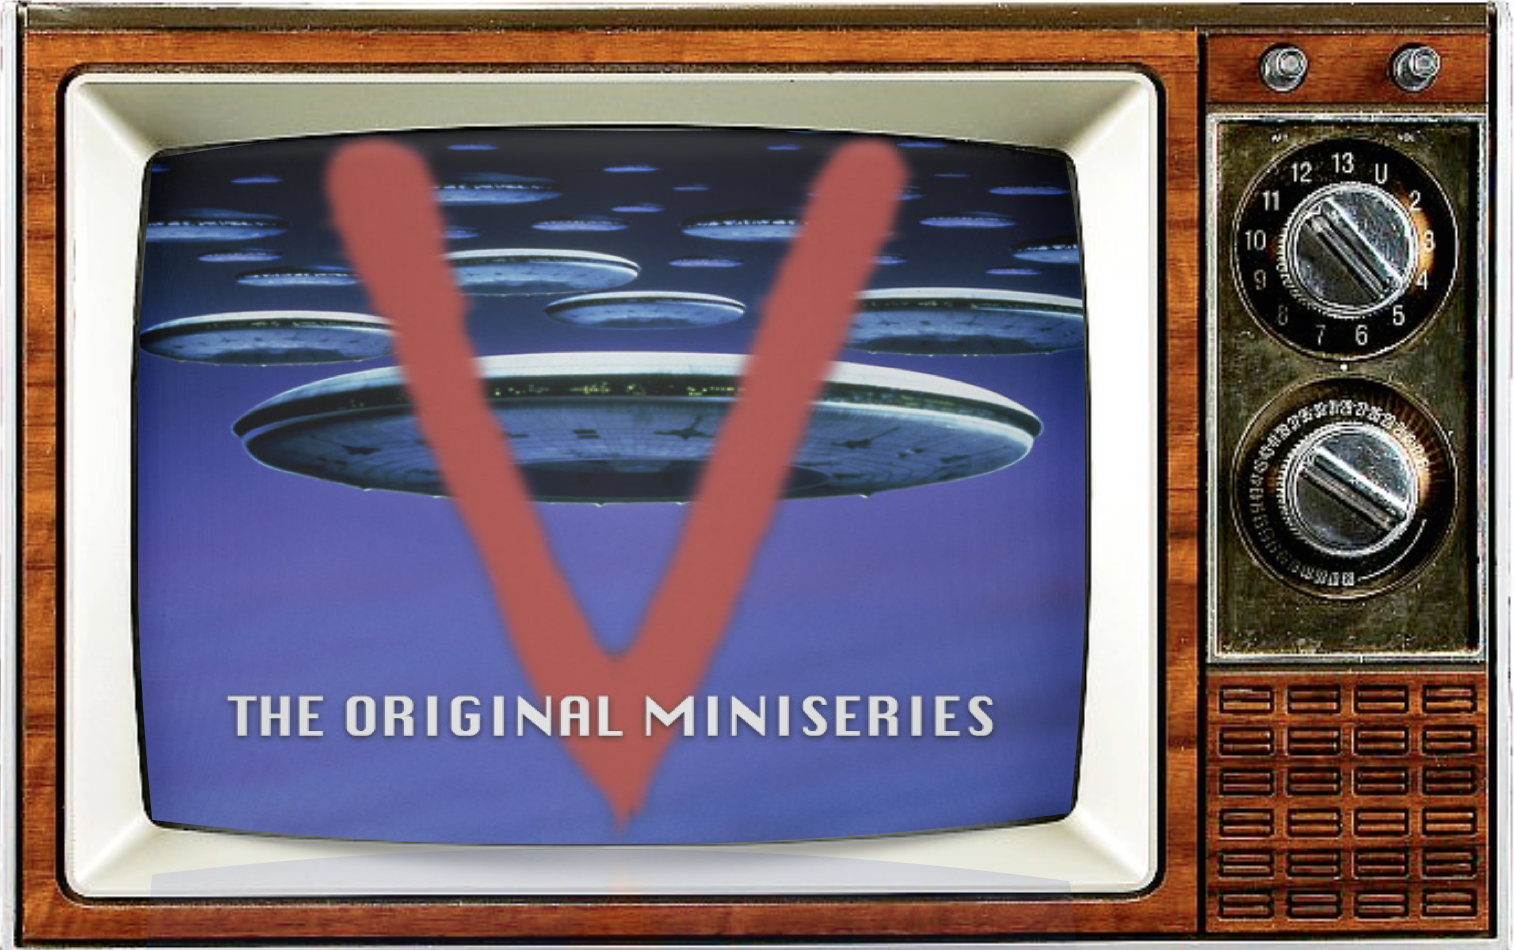 SMC Episode 83: Event TV is Back! V: The Original Miniseries w/ Kenneth Johnson & Marc Singer